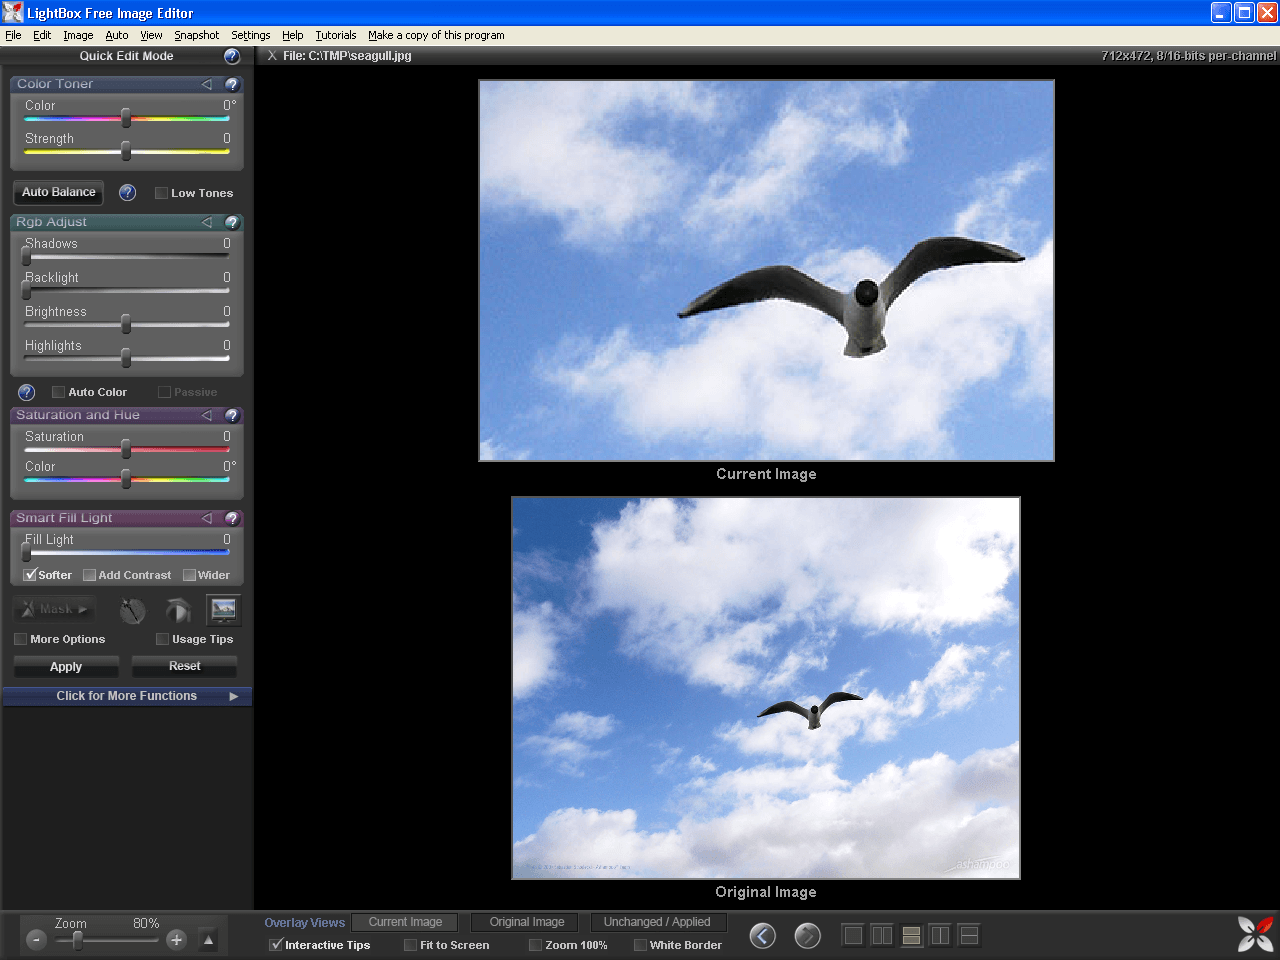 Crop And Resize Functions